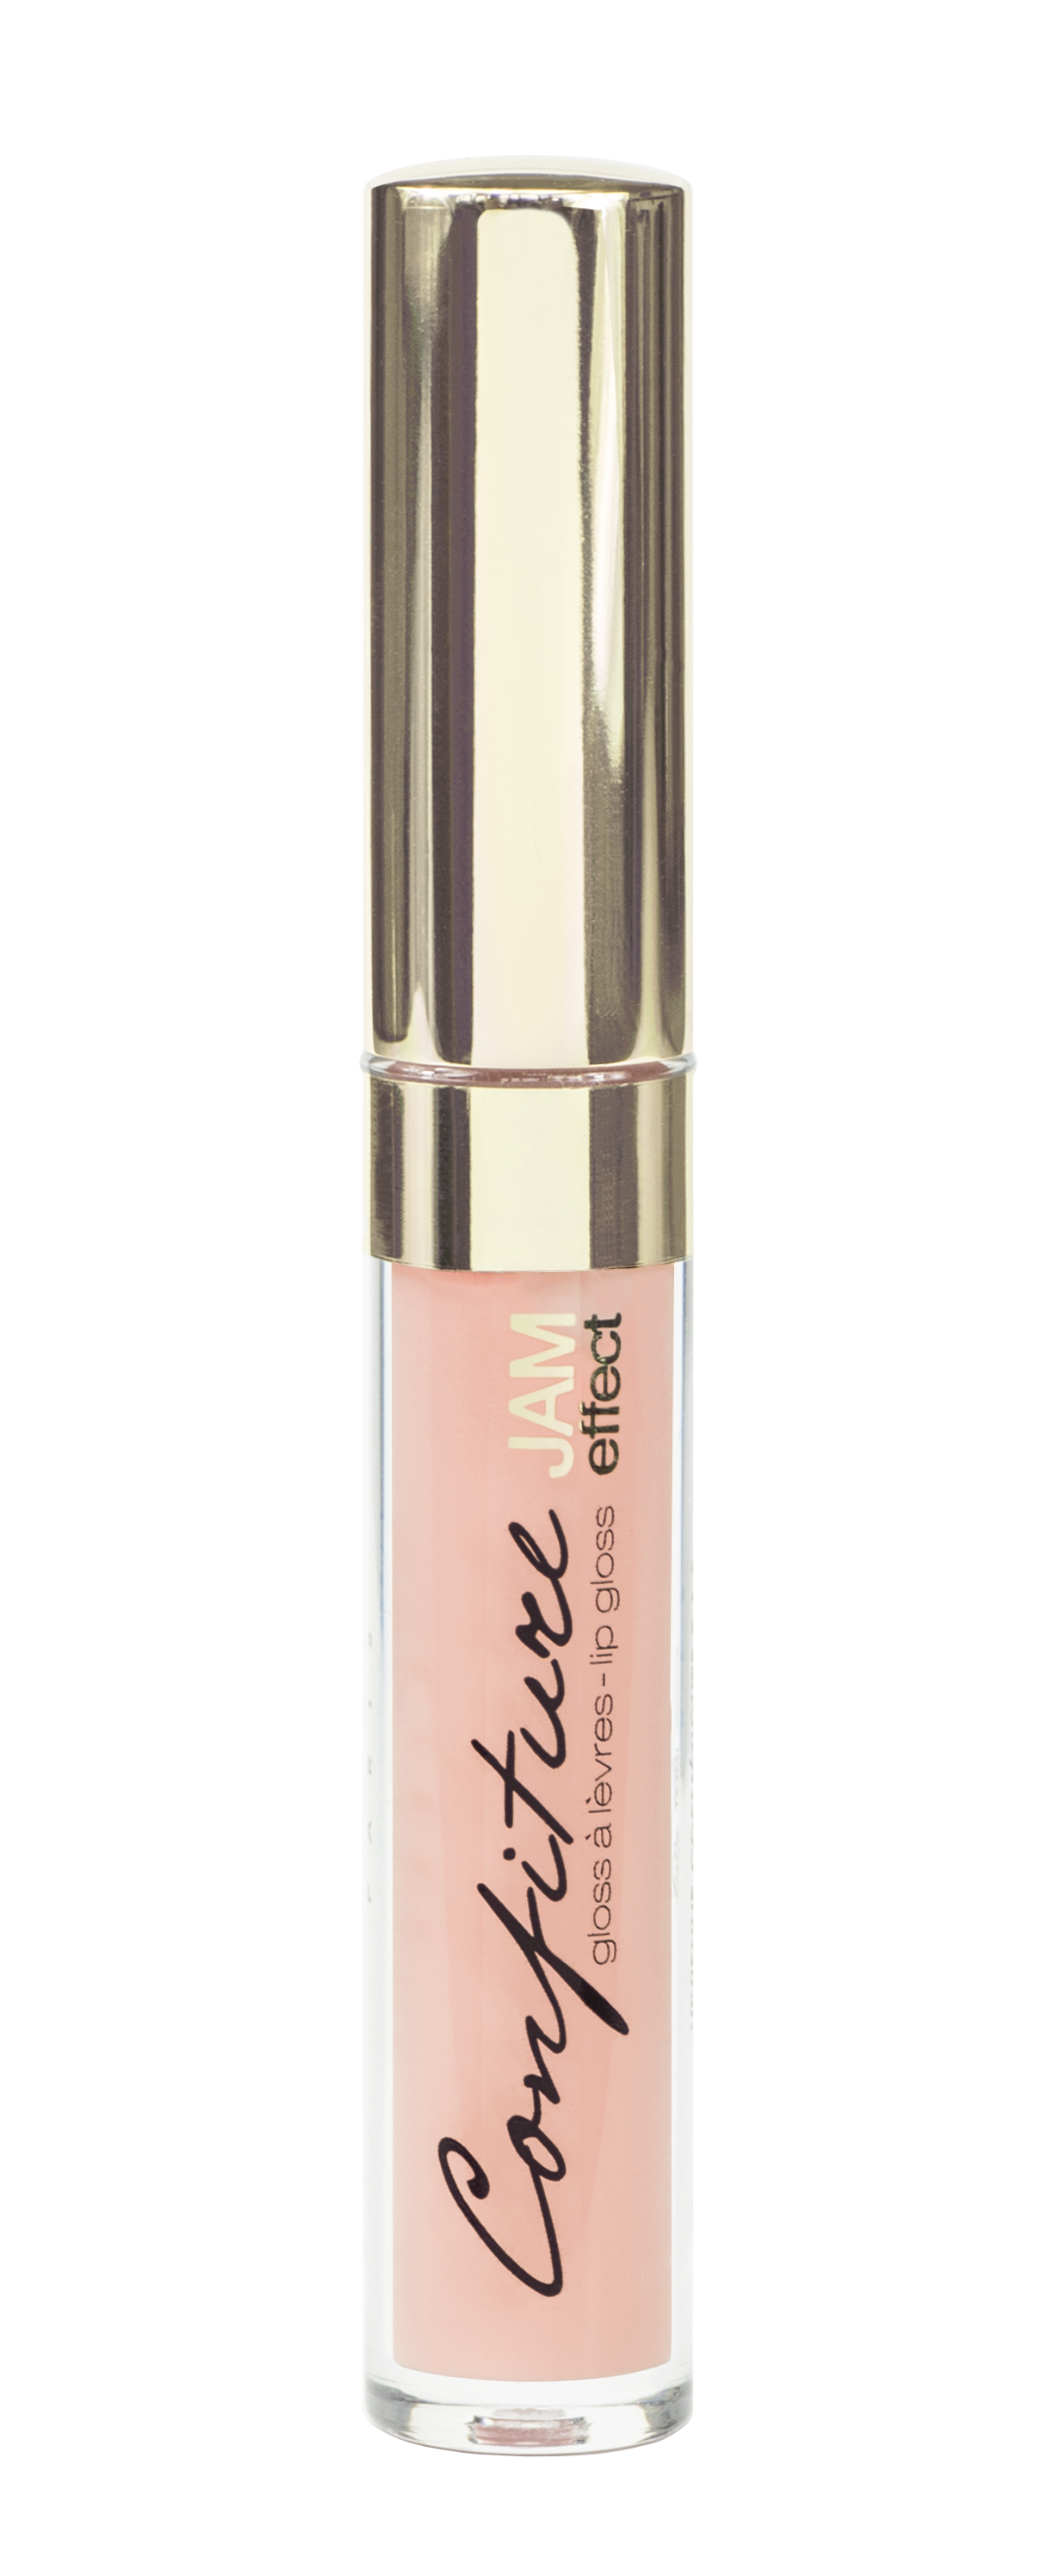 Vivienne Sabo - Lip Gloss Confiture